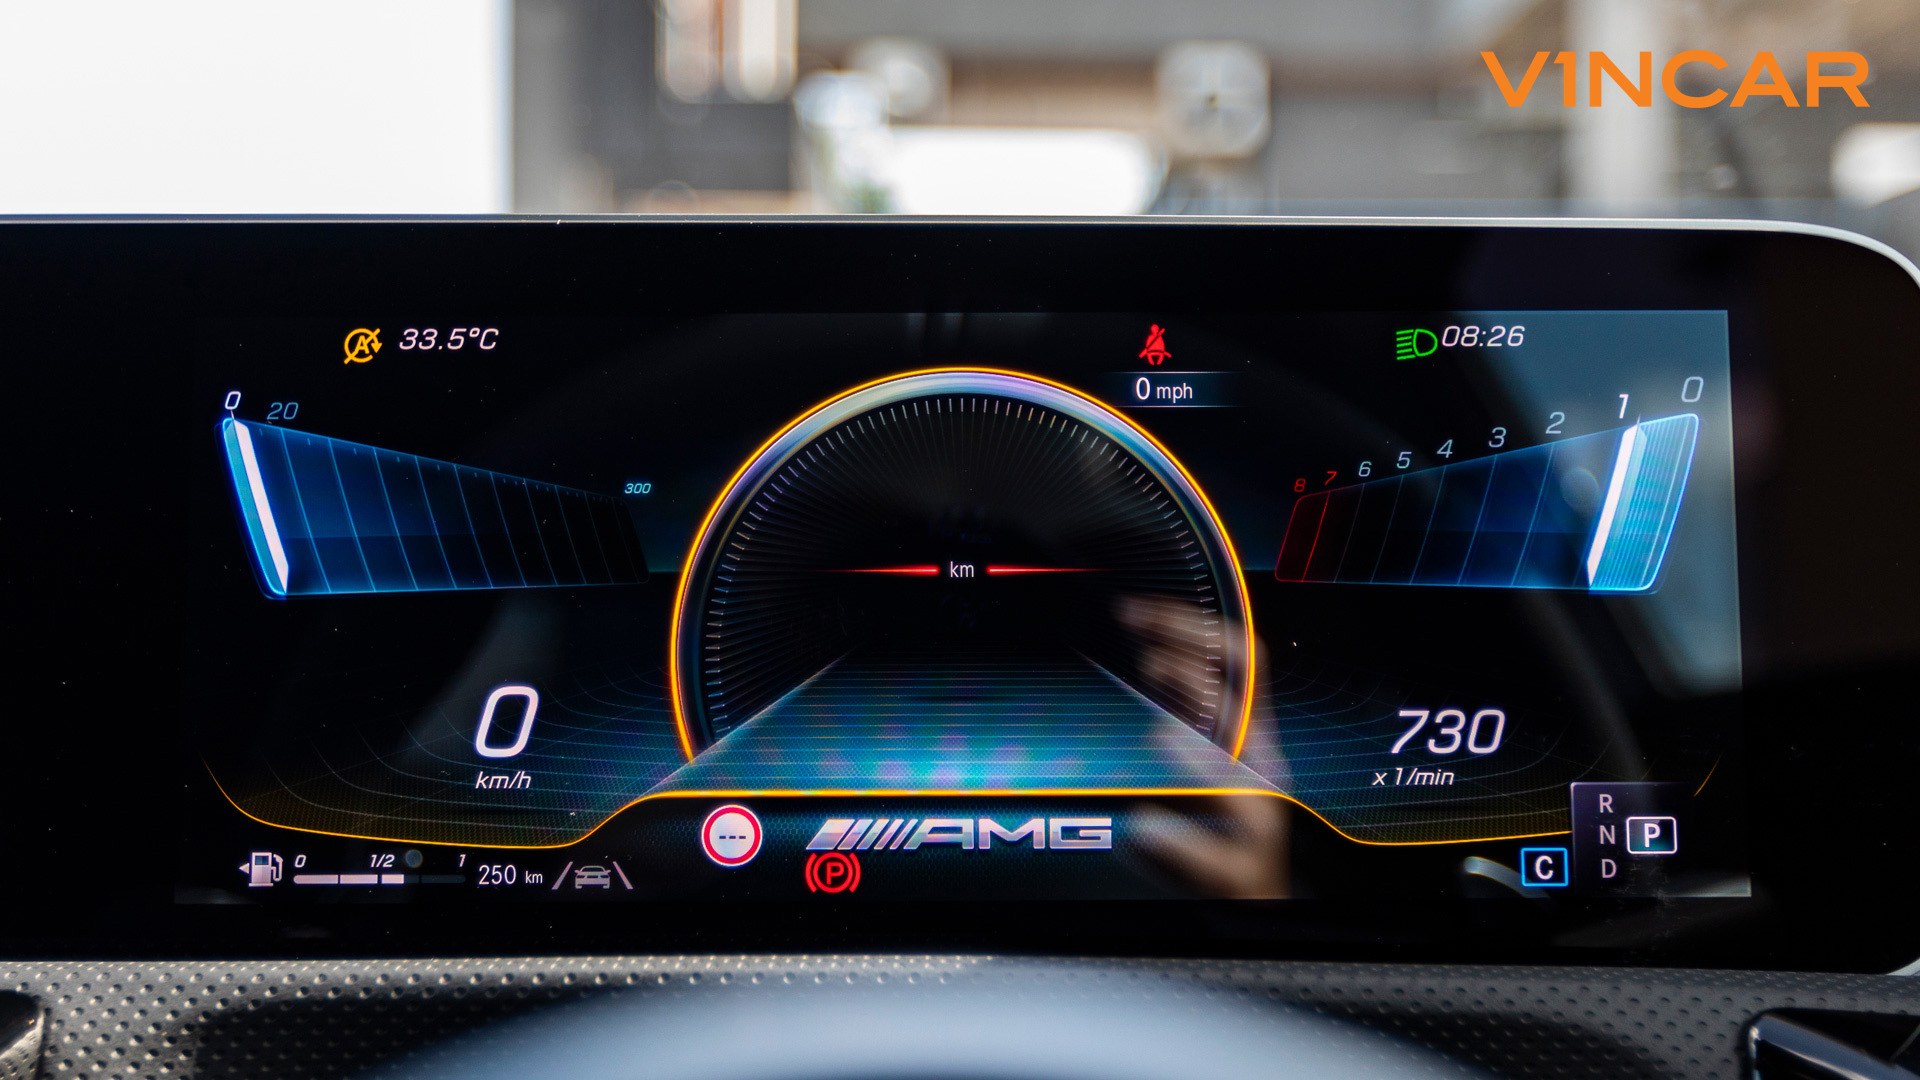 Mercedes A45 S 4MATIC+ Plus AMG - Screen Display